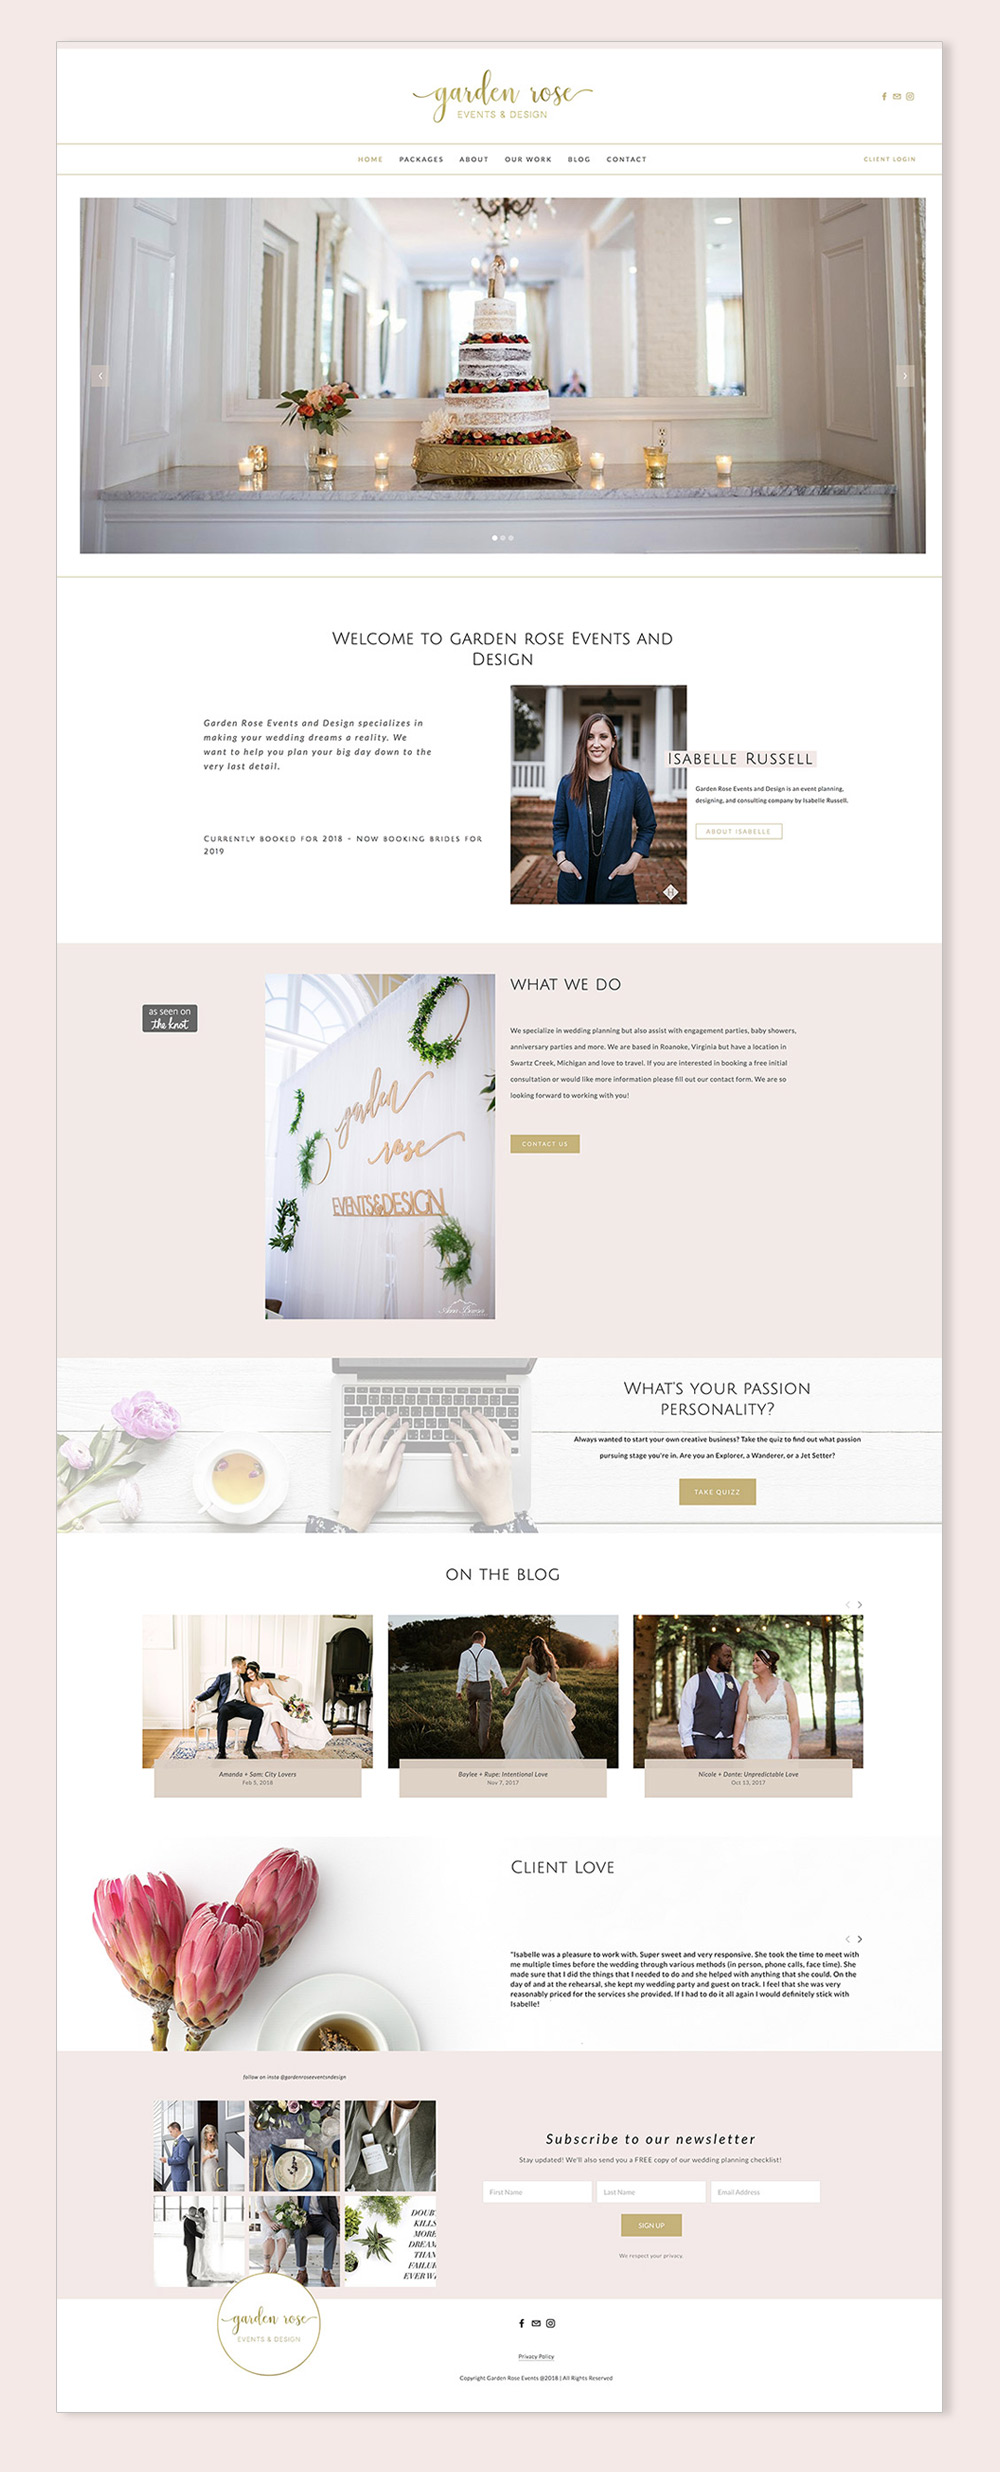 Garden Rose Events | Squarespace web design for a wedding event planner by Jodi Neufeld Design